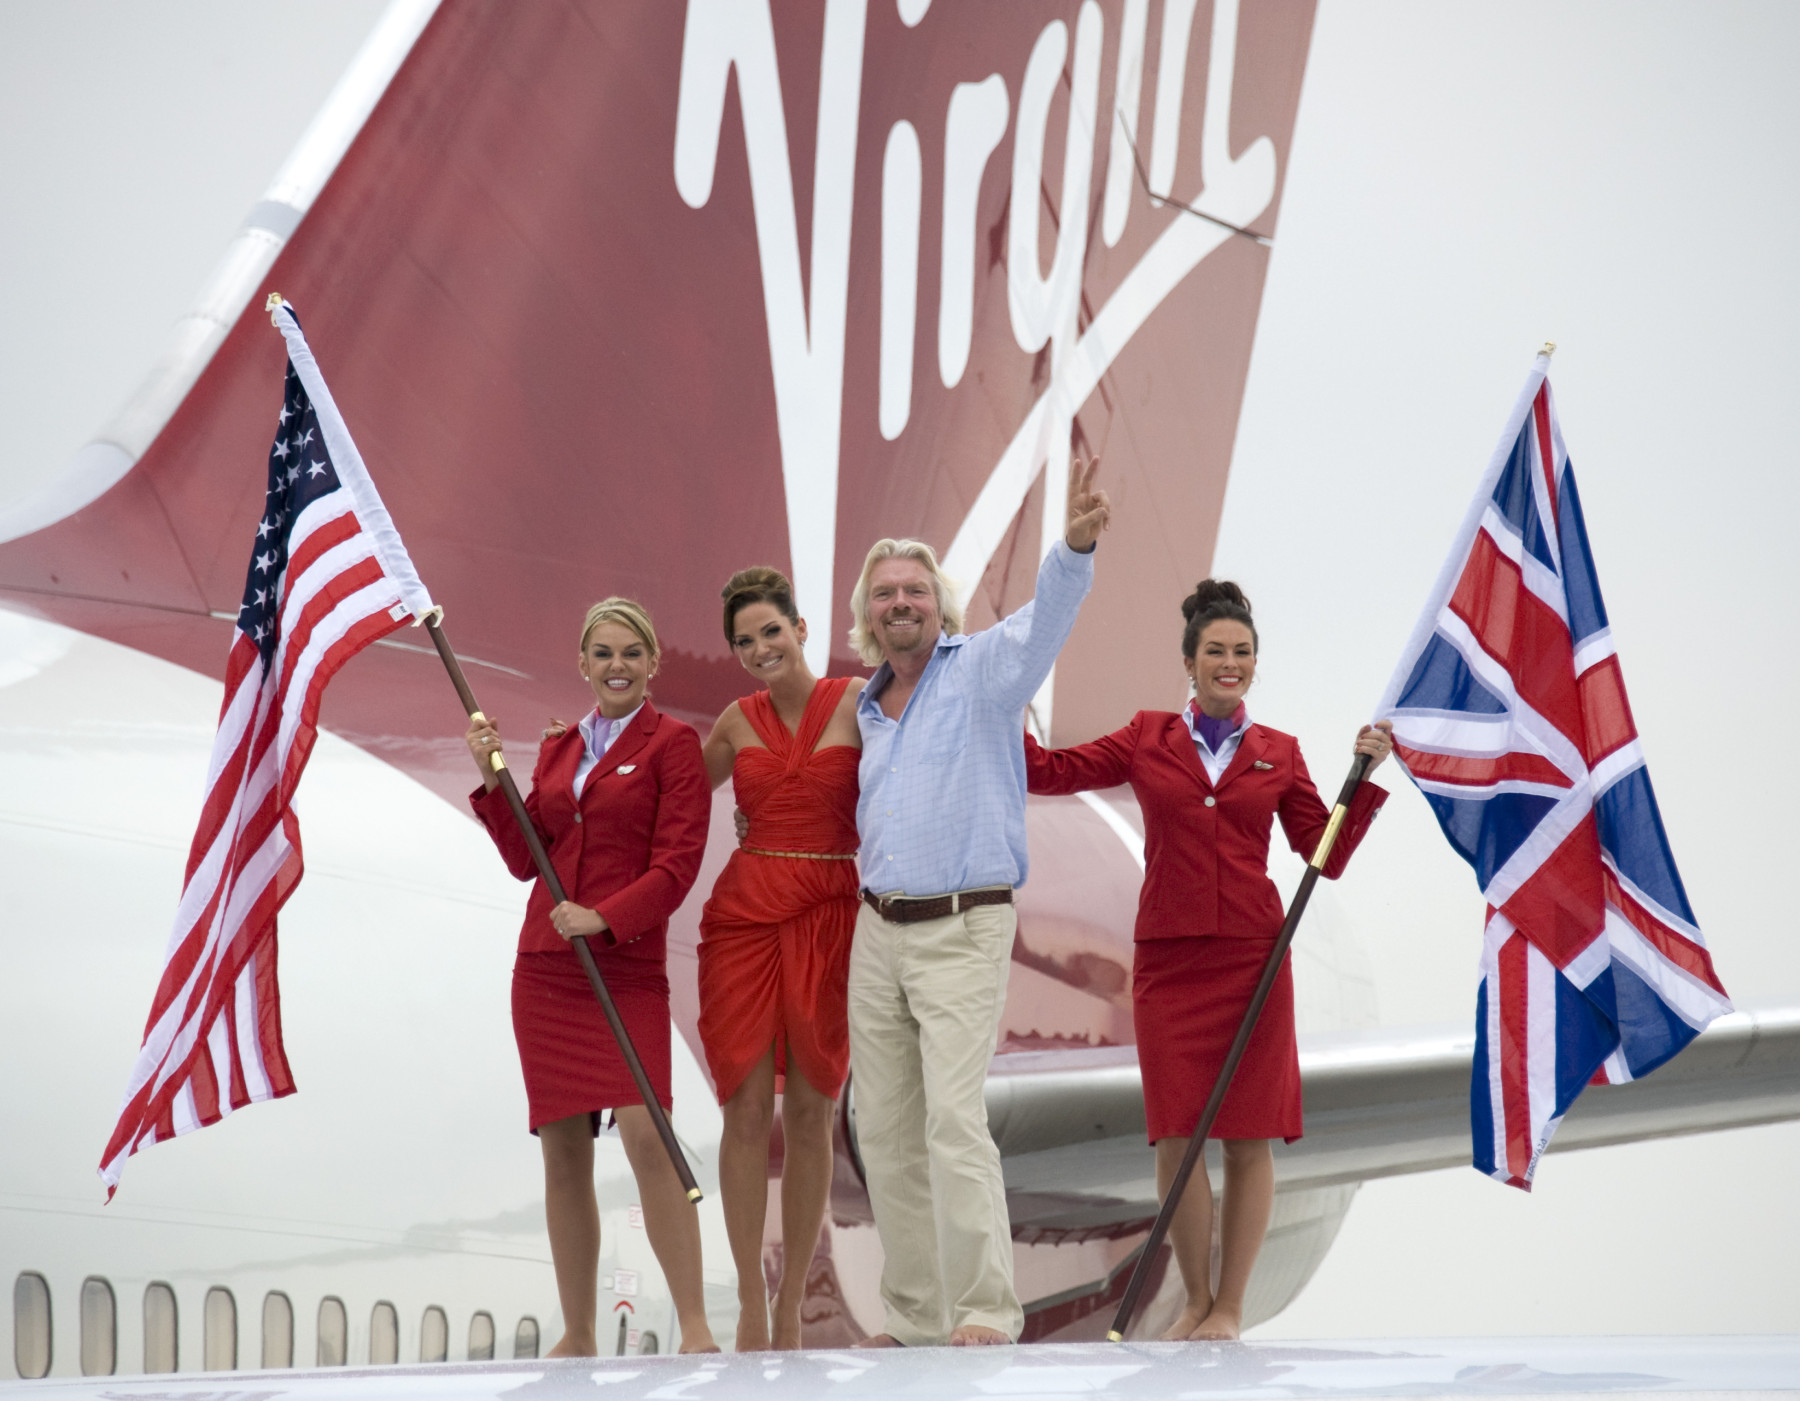 Sir Richard Branson and Sarah Harding at a photocall in Miami celebrate Virgin Atlantic's 25th anniversary to Miami. picture David Dyson